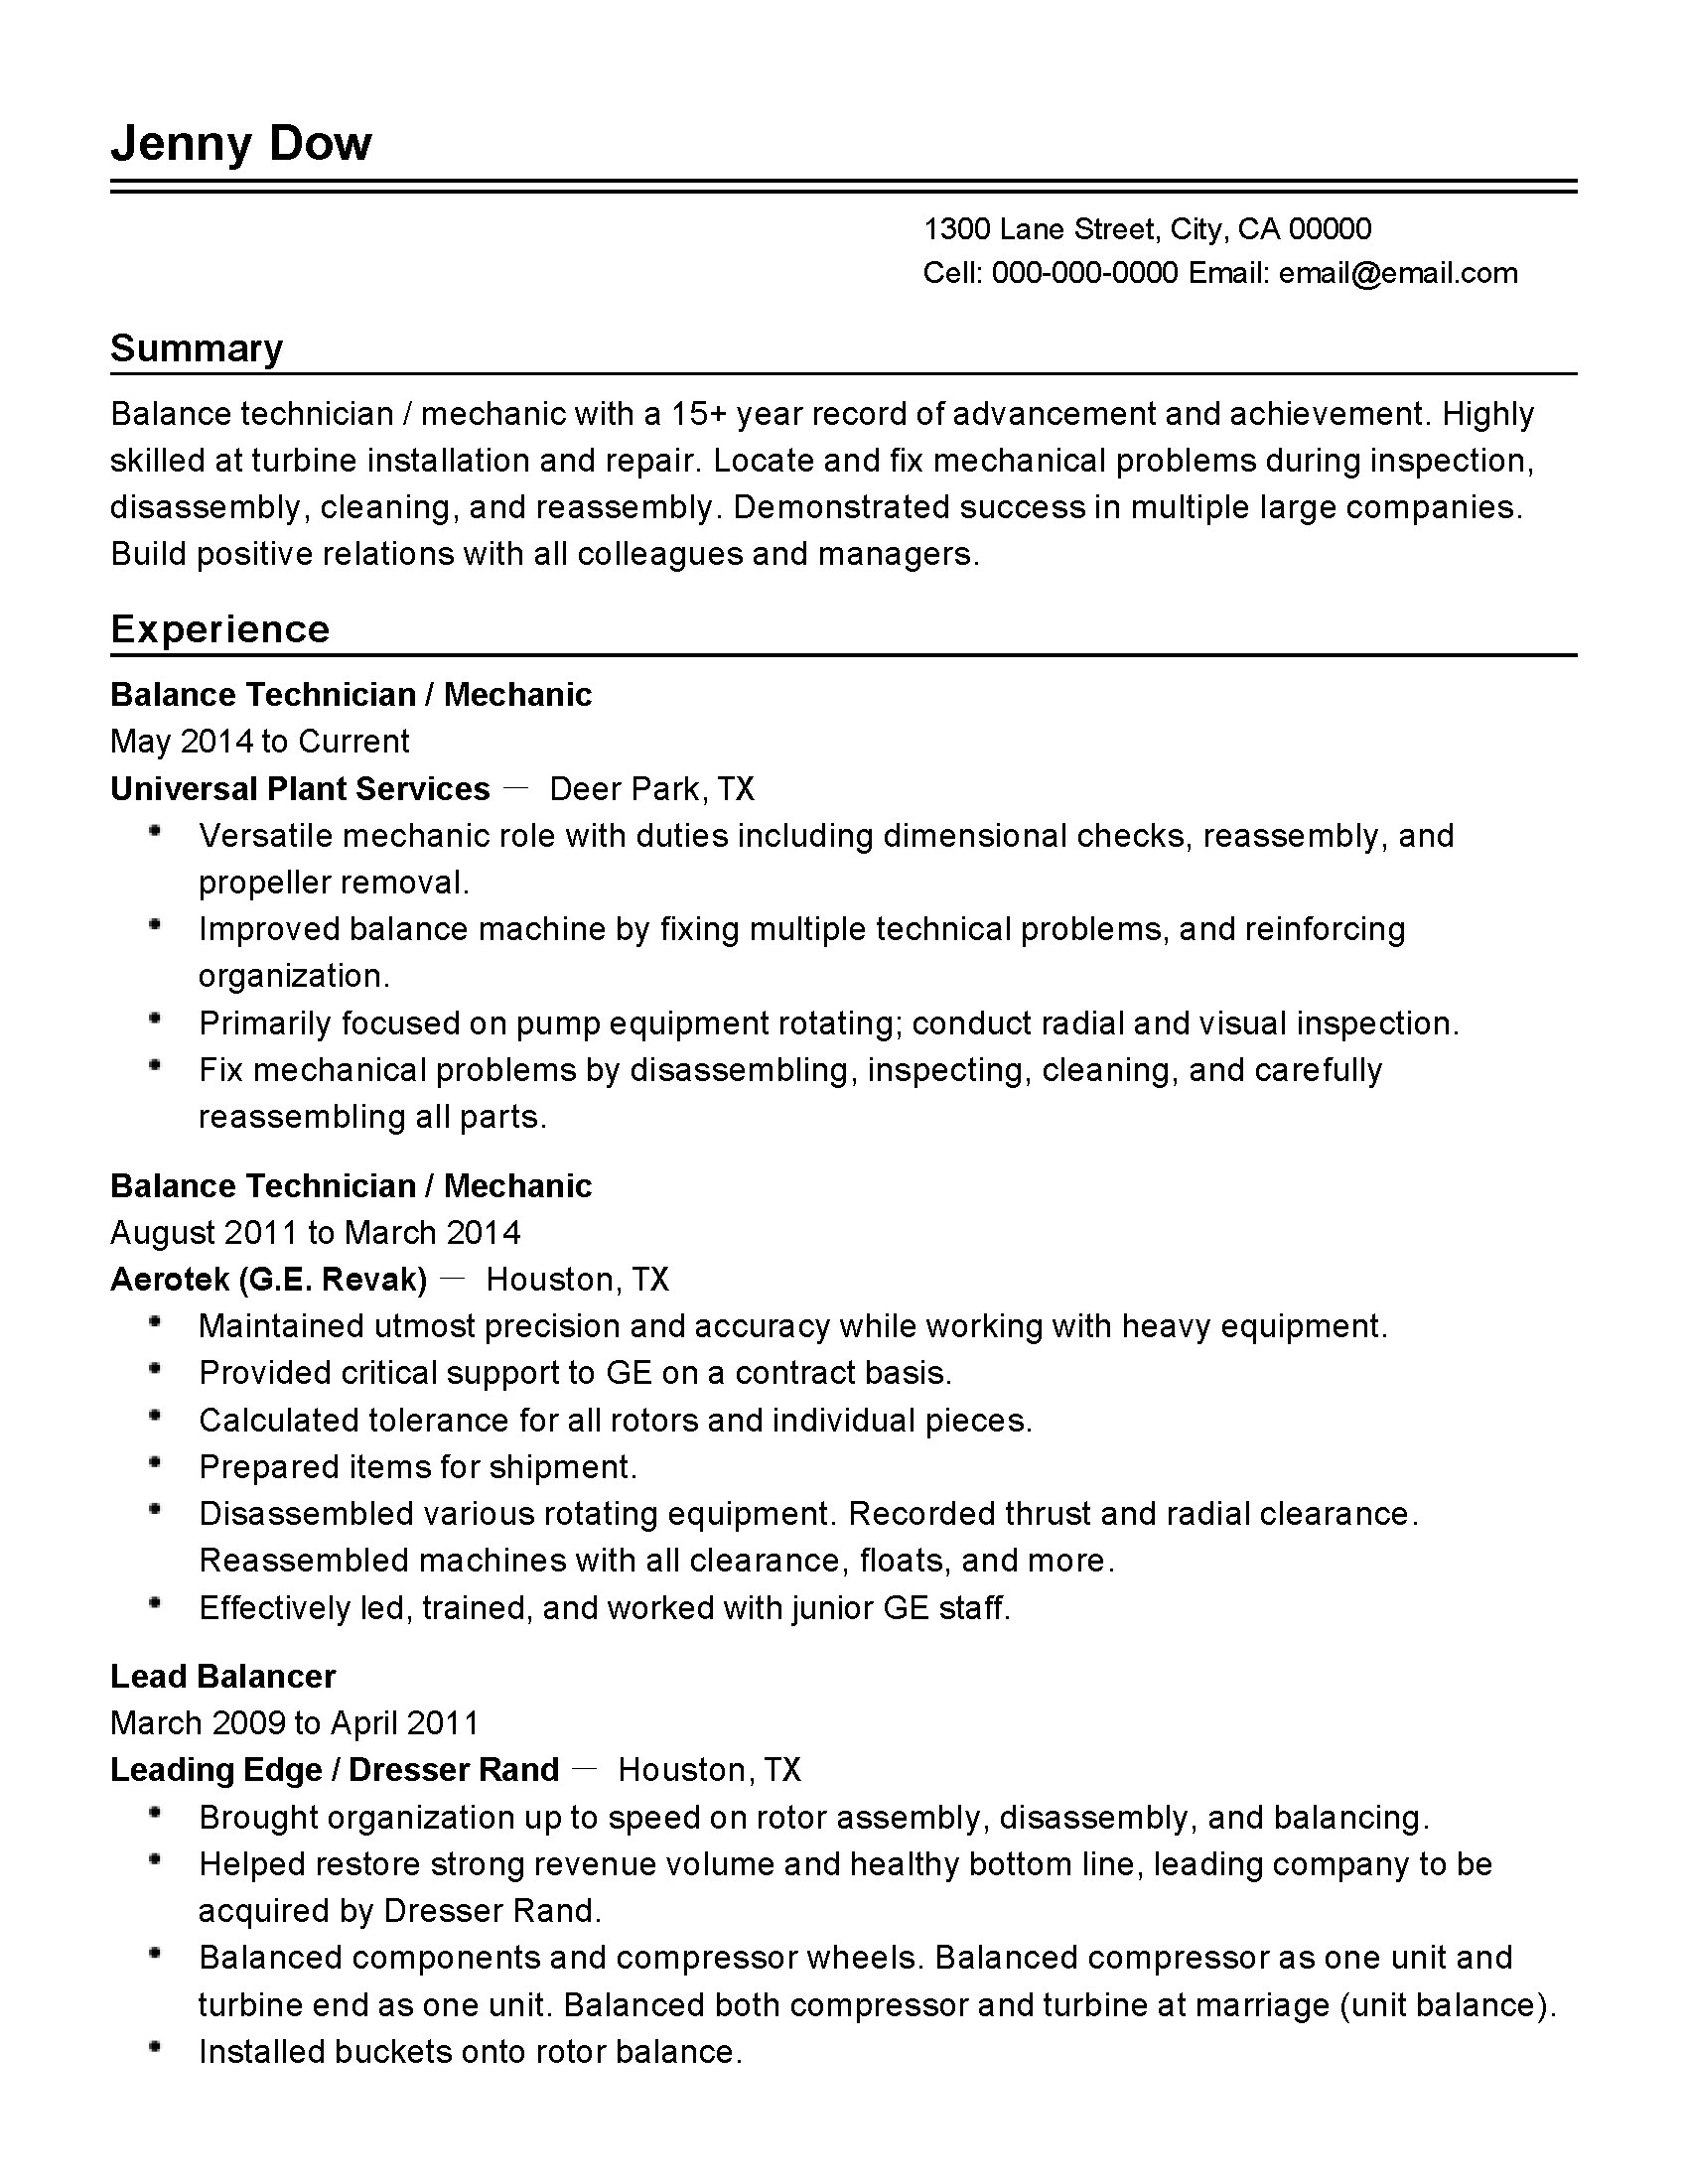 Plant Manager Resume Professional Balance Technician Templates To Showcase Your